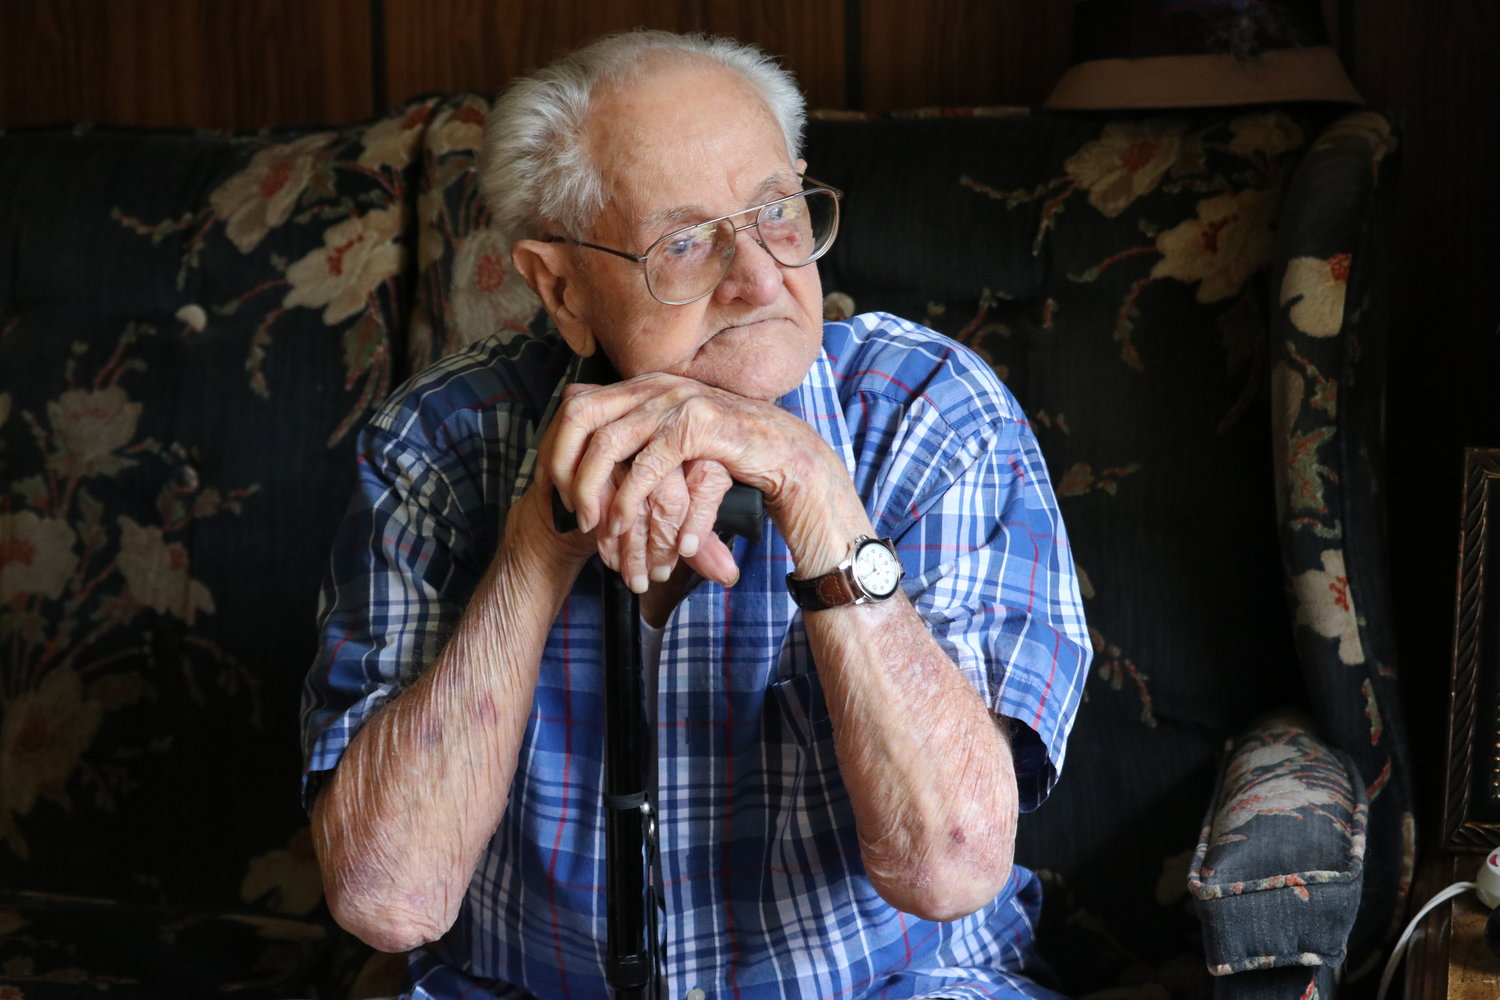 Bob Hester of Parrish celebrated his 102nd birthday early in July. He shared some of  the stories of his life.